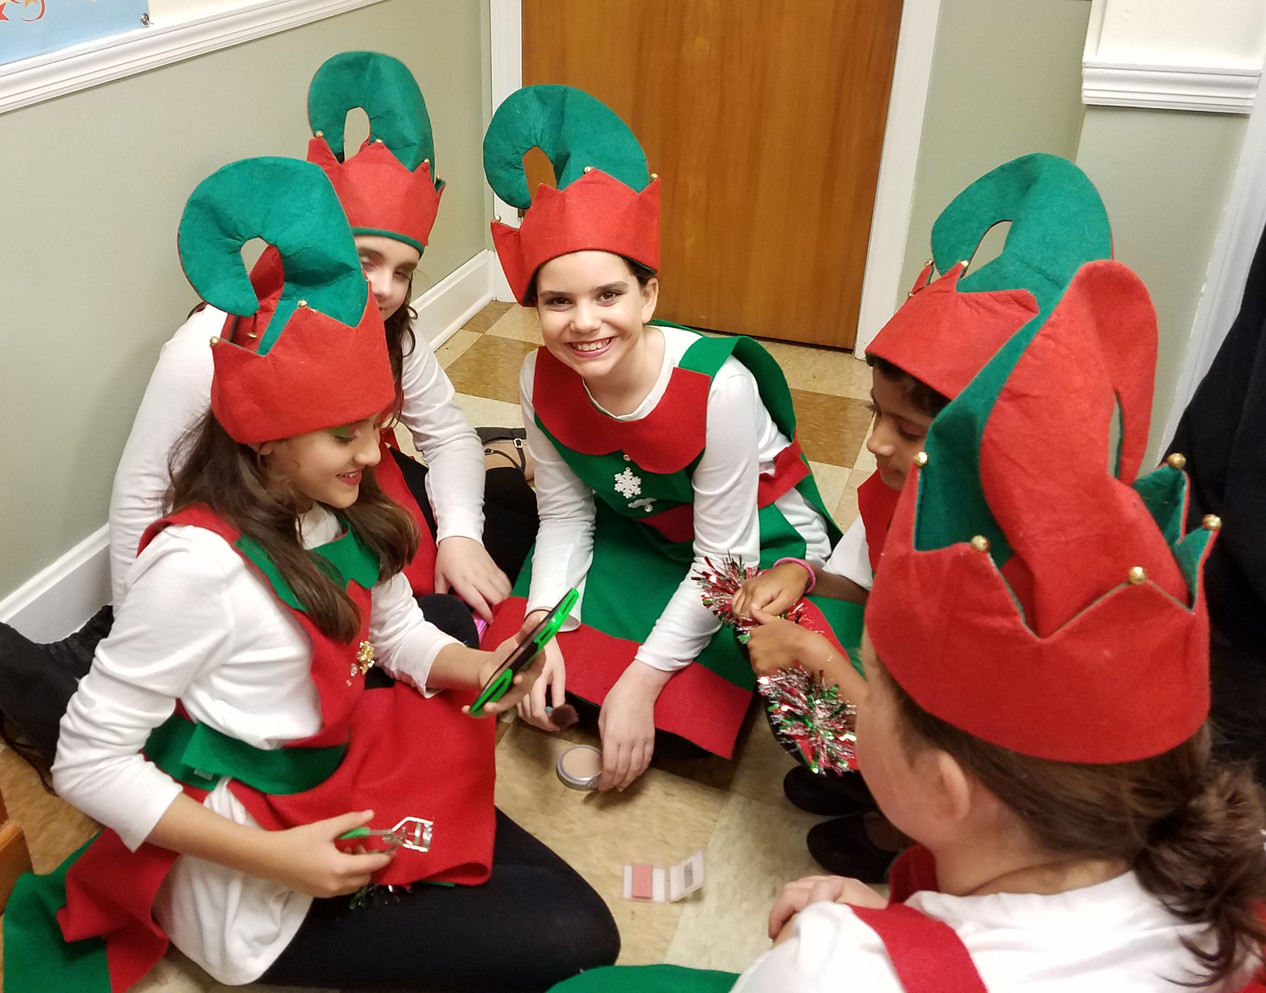 Backstage elves 3.jpg